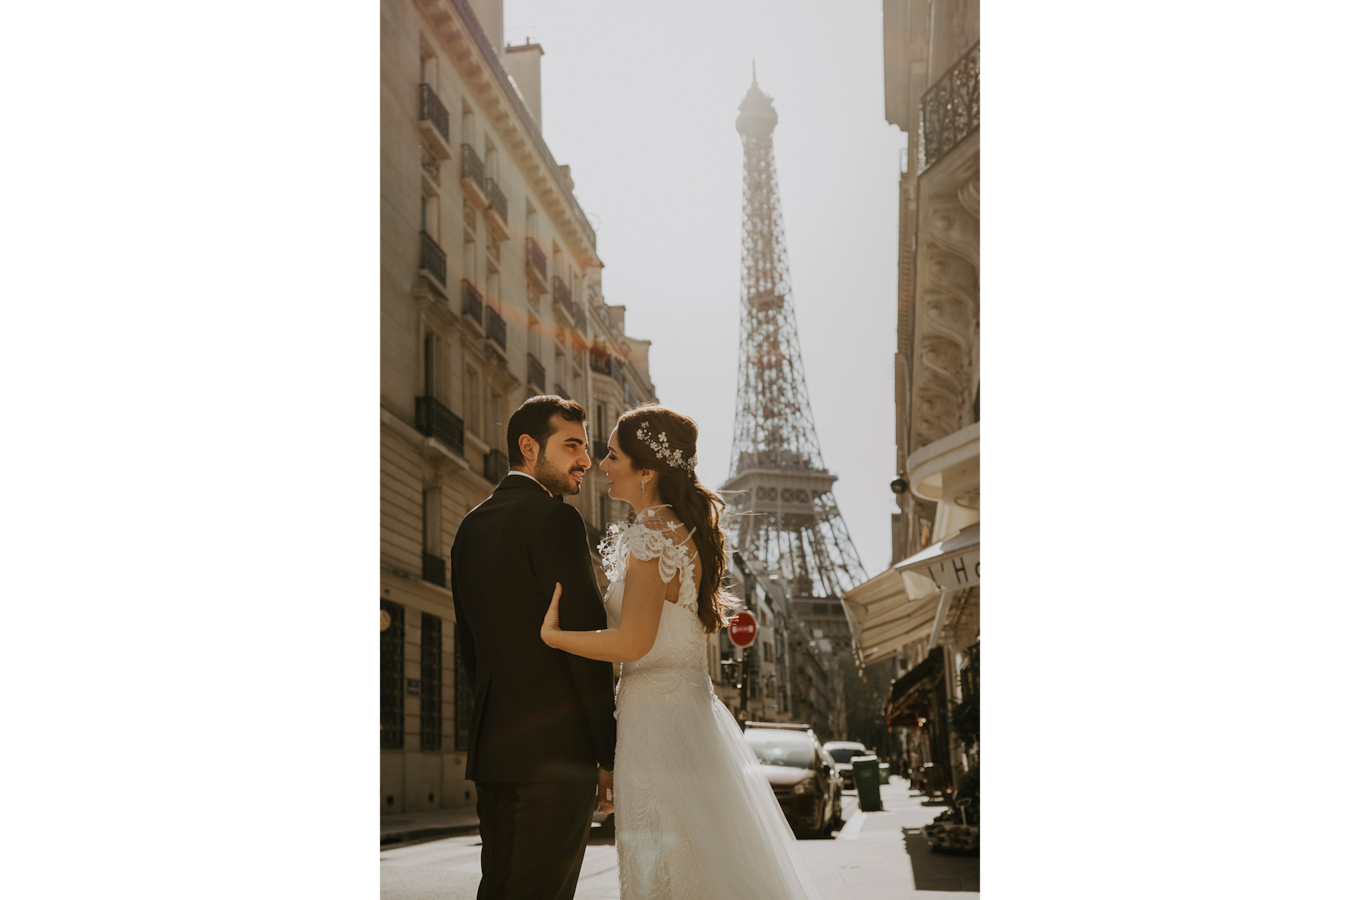 sina-demiral-sony-alpha-99II-bride-and-groom-standing-in-street-in-front-of-eiffel-tower-embracing